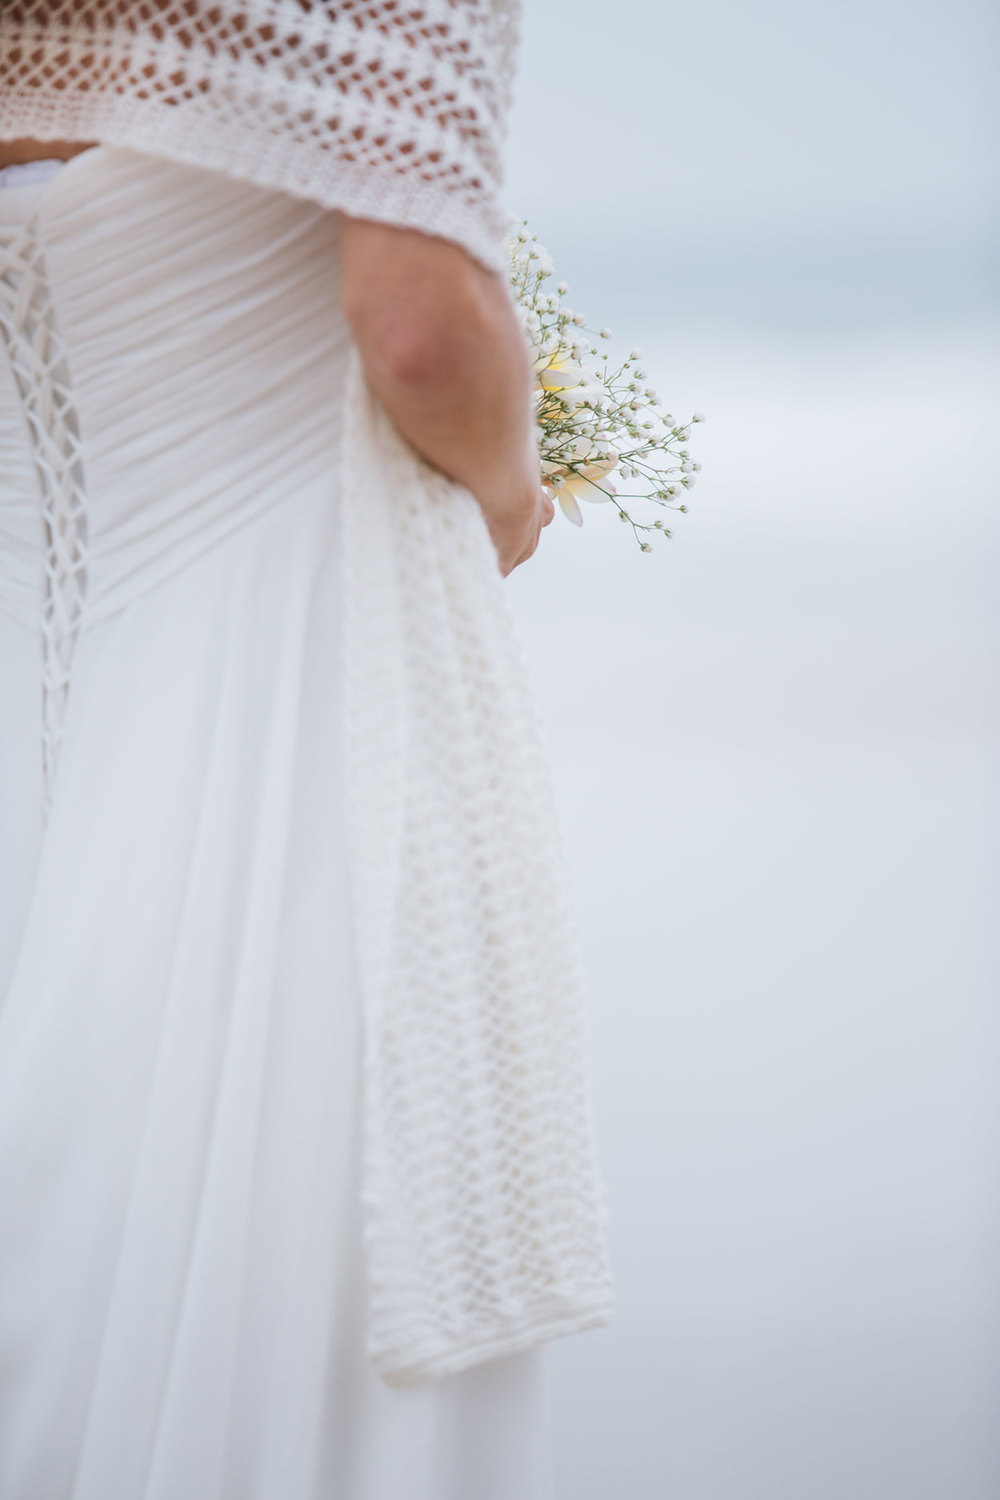 Noosa Main Beach Wedding - Sunshine Coast, Queensland, Australian Photographer